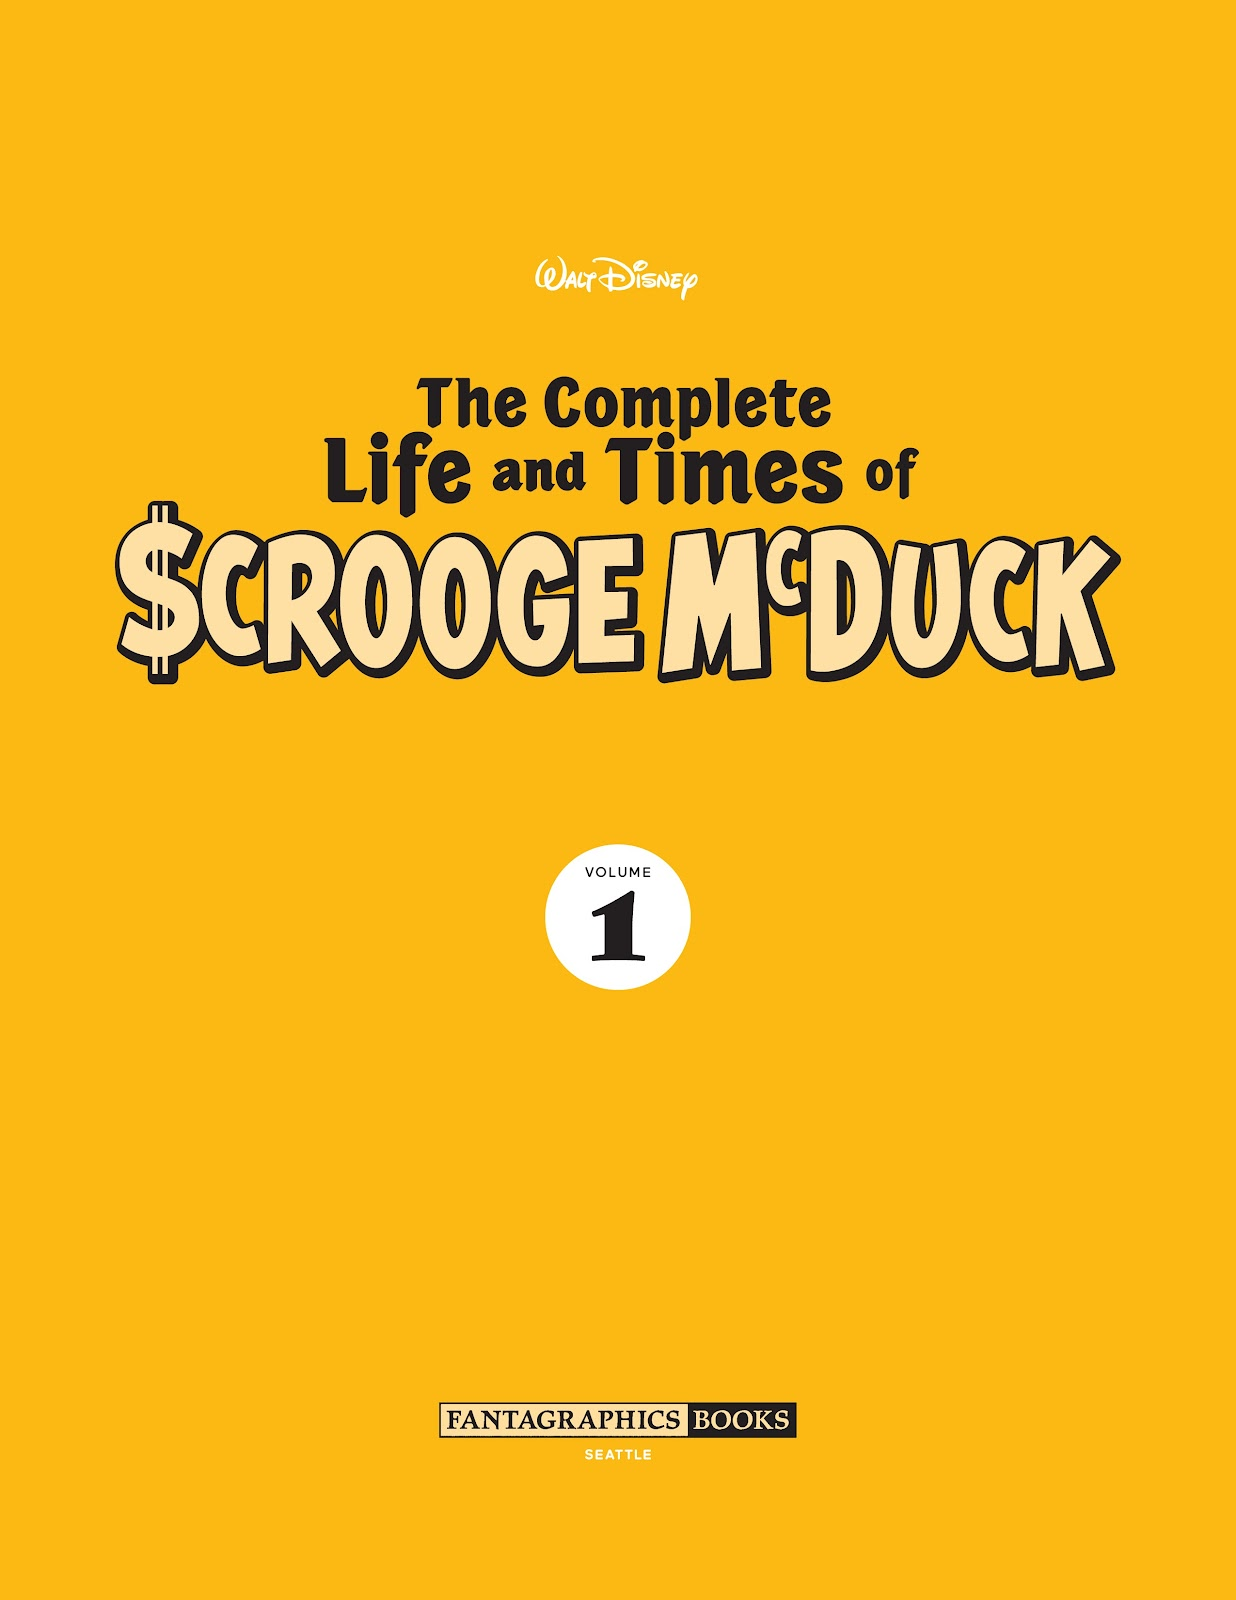 Read online The Complete Life and Times of Scrooge McDuck comic -  Issue # TPB 1 (Part 1) - 2